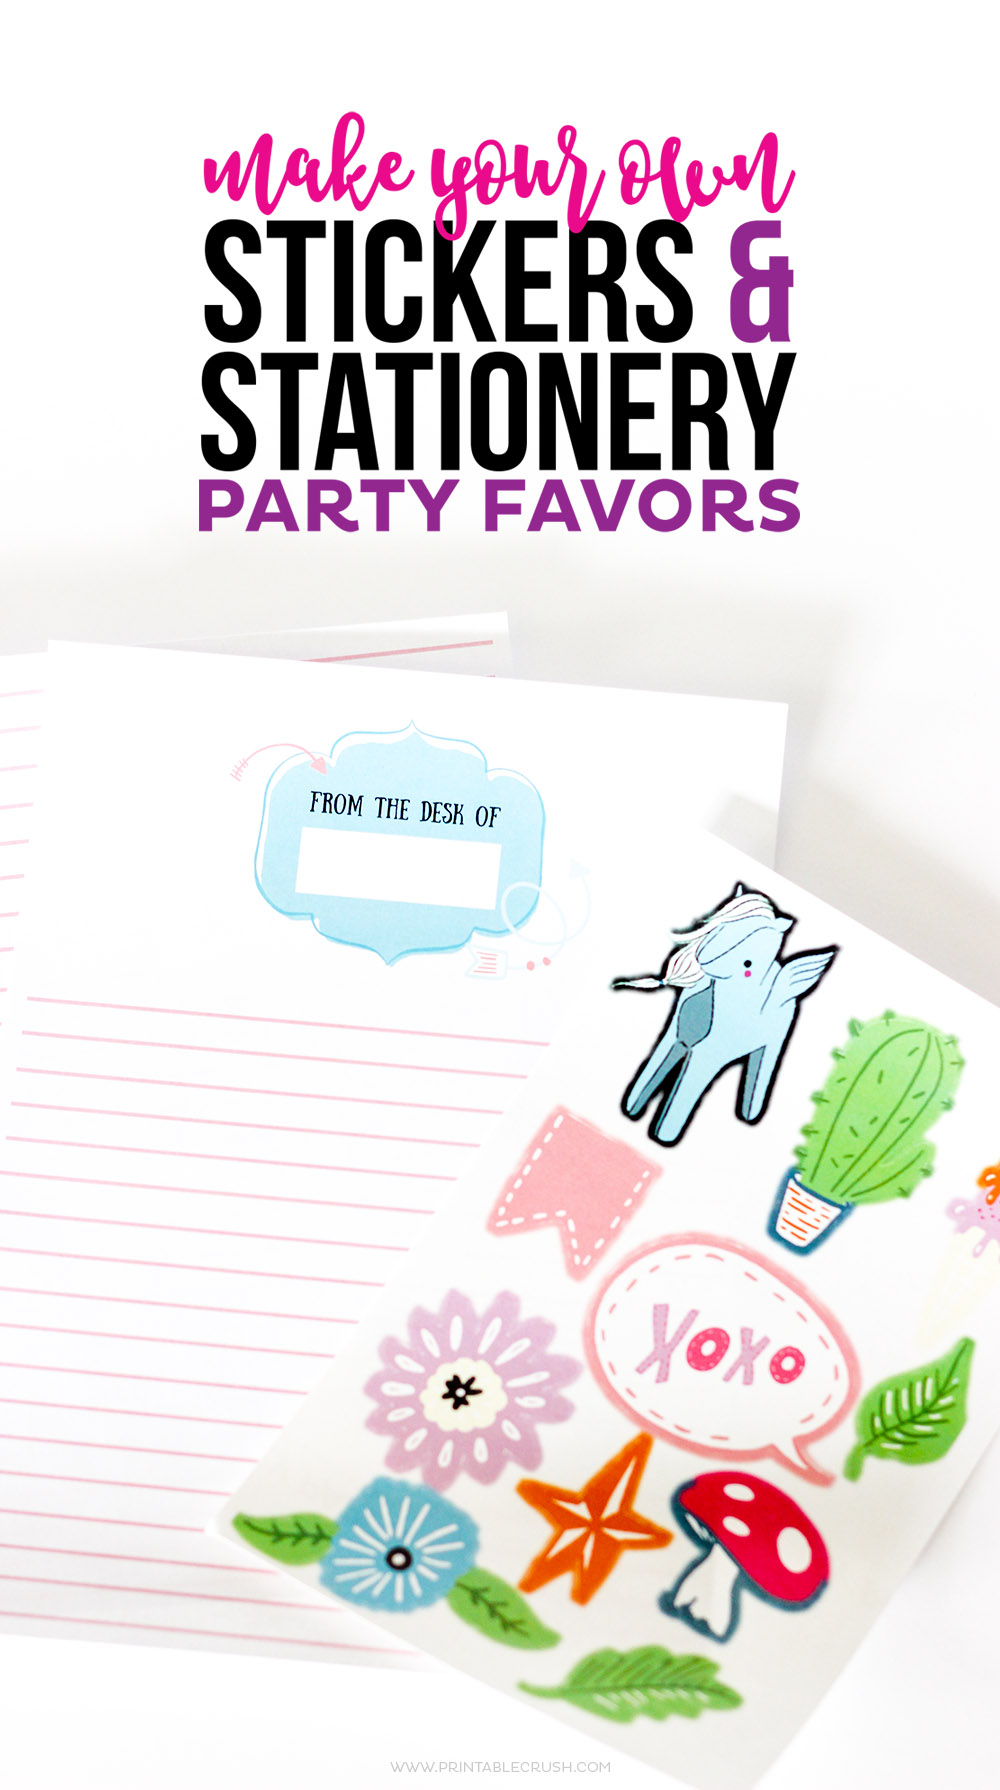 Make Your Own Stickers And Stationery Party Favors Printable Crush - Make your own stickers